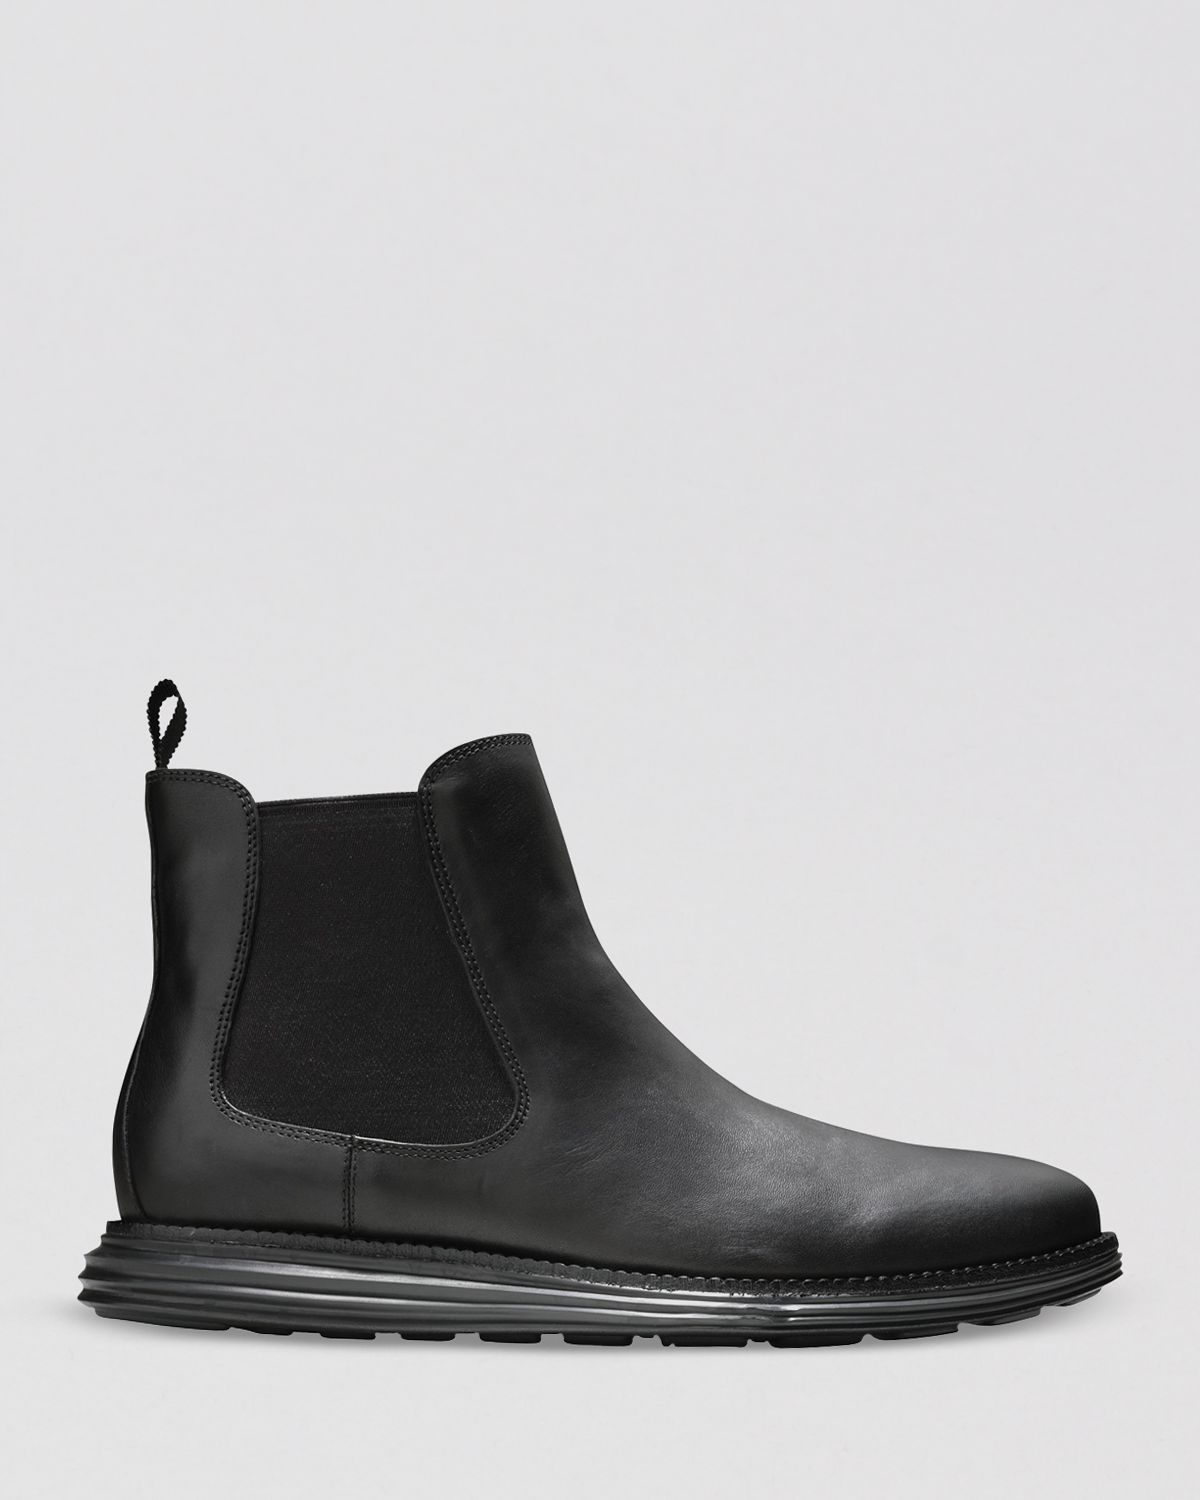 Cole Haan Lunargrand Chelsea Boots In Black For Men Lyst